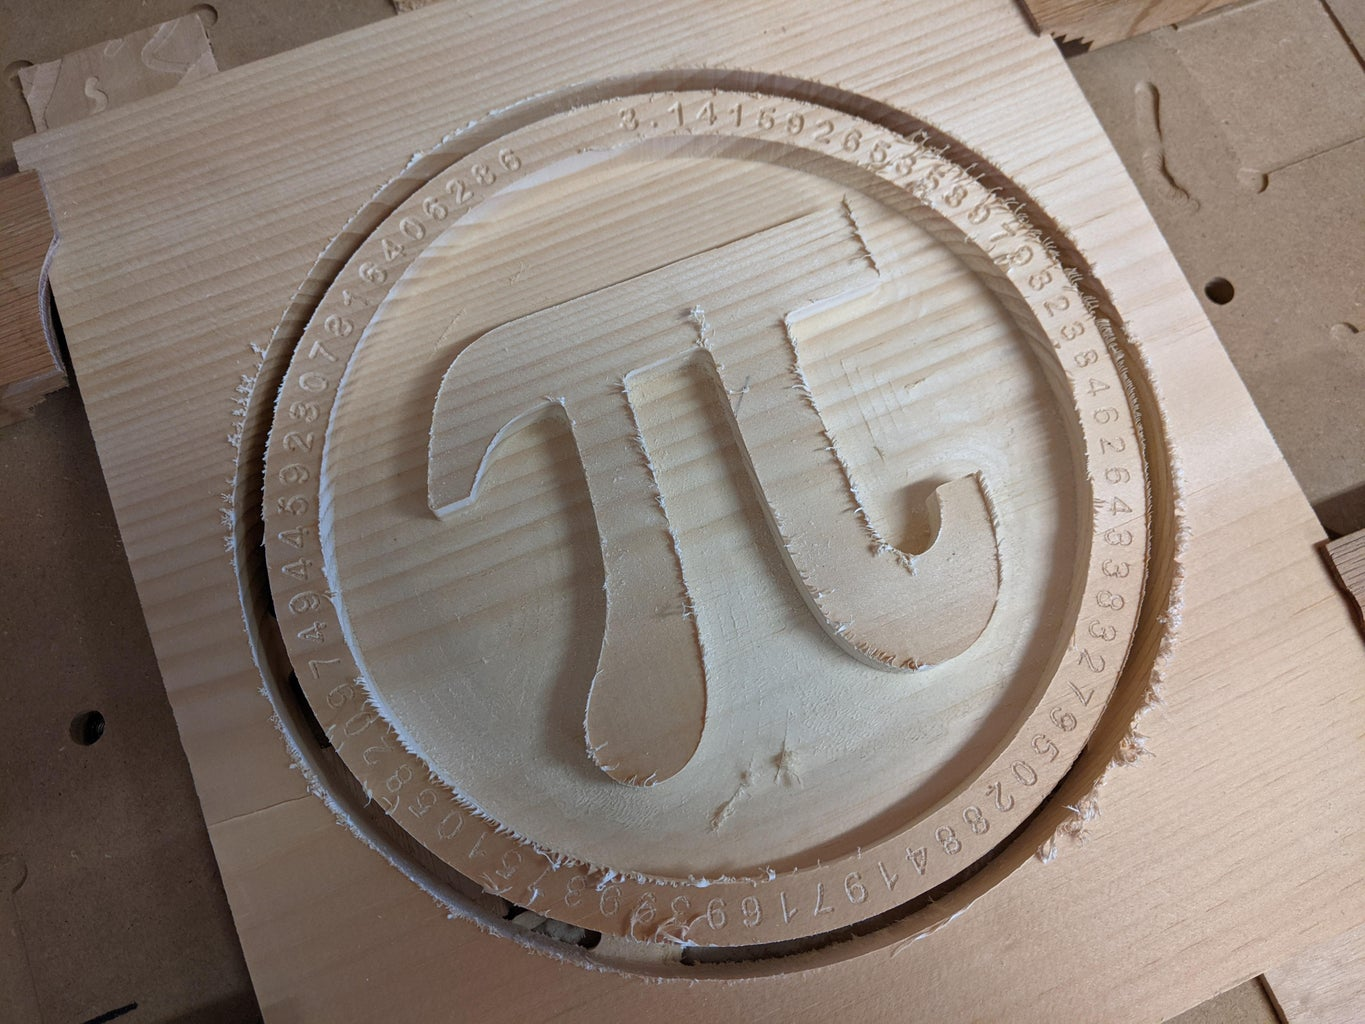 Run the Front_pi Carving Gcode